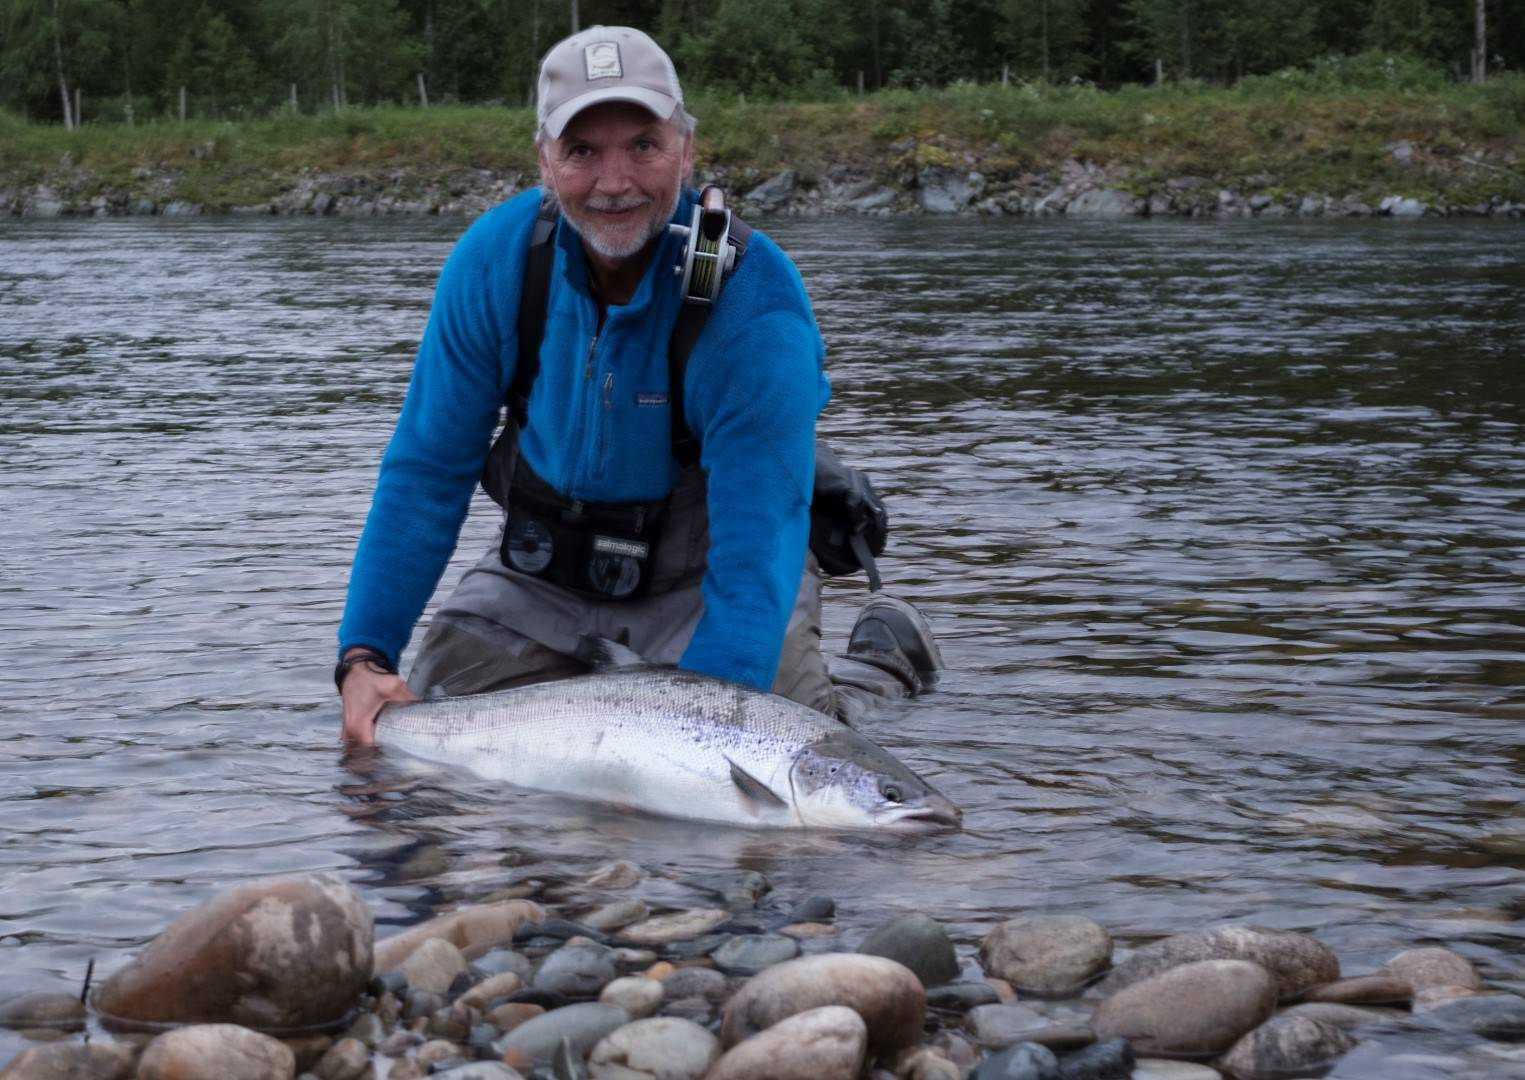 Henrik with his 2nd fish of about 11kg